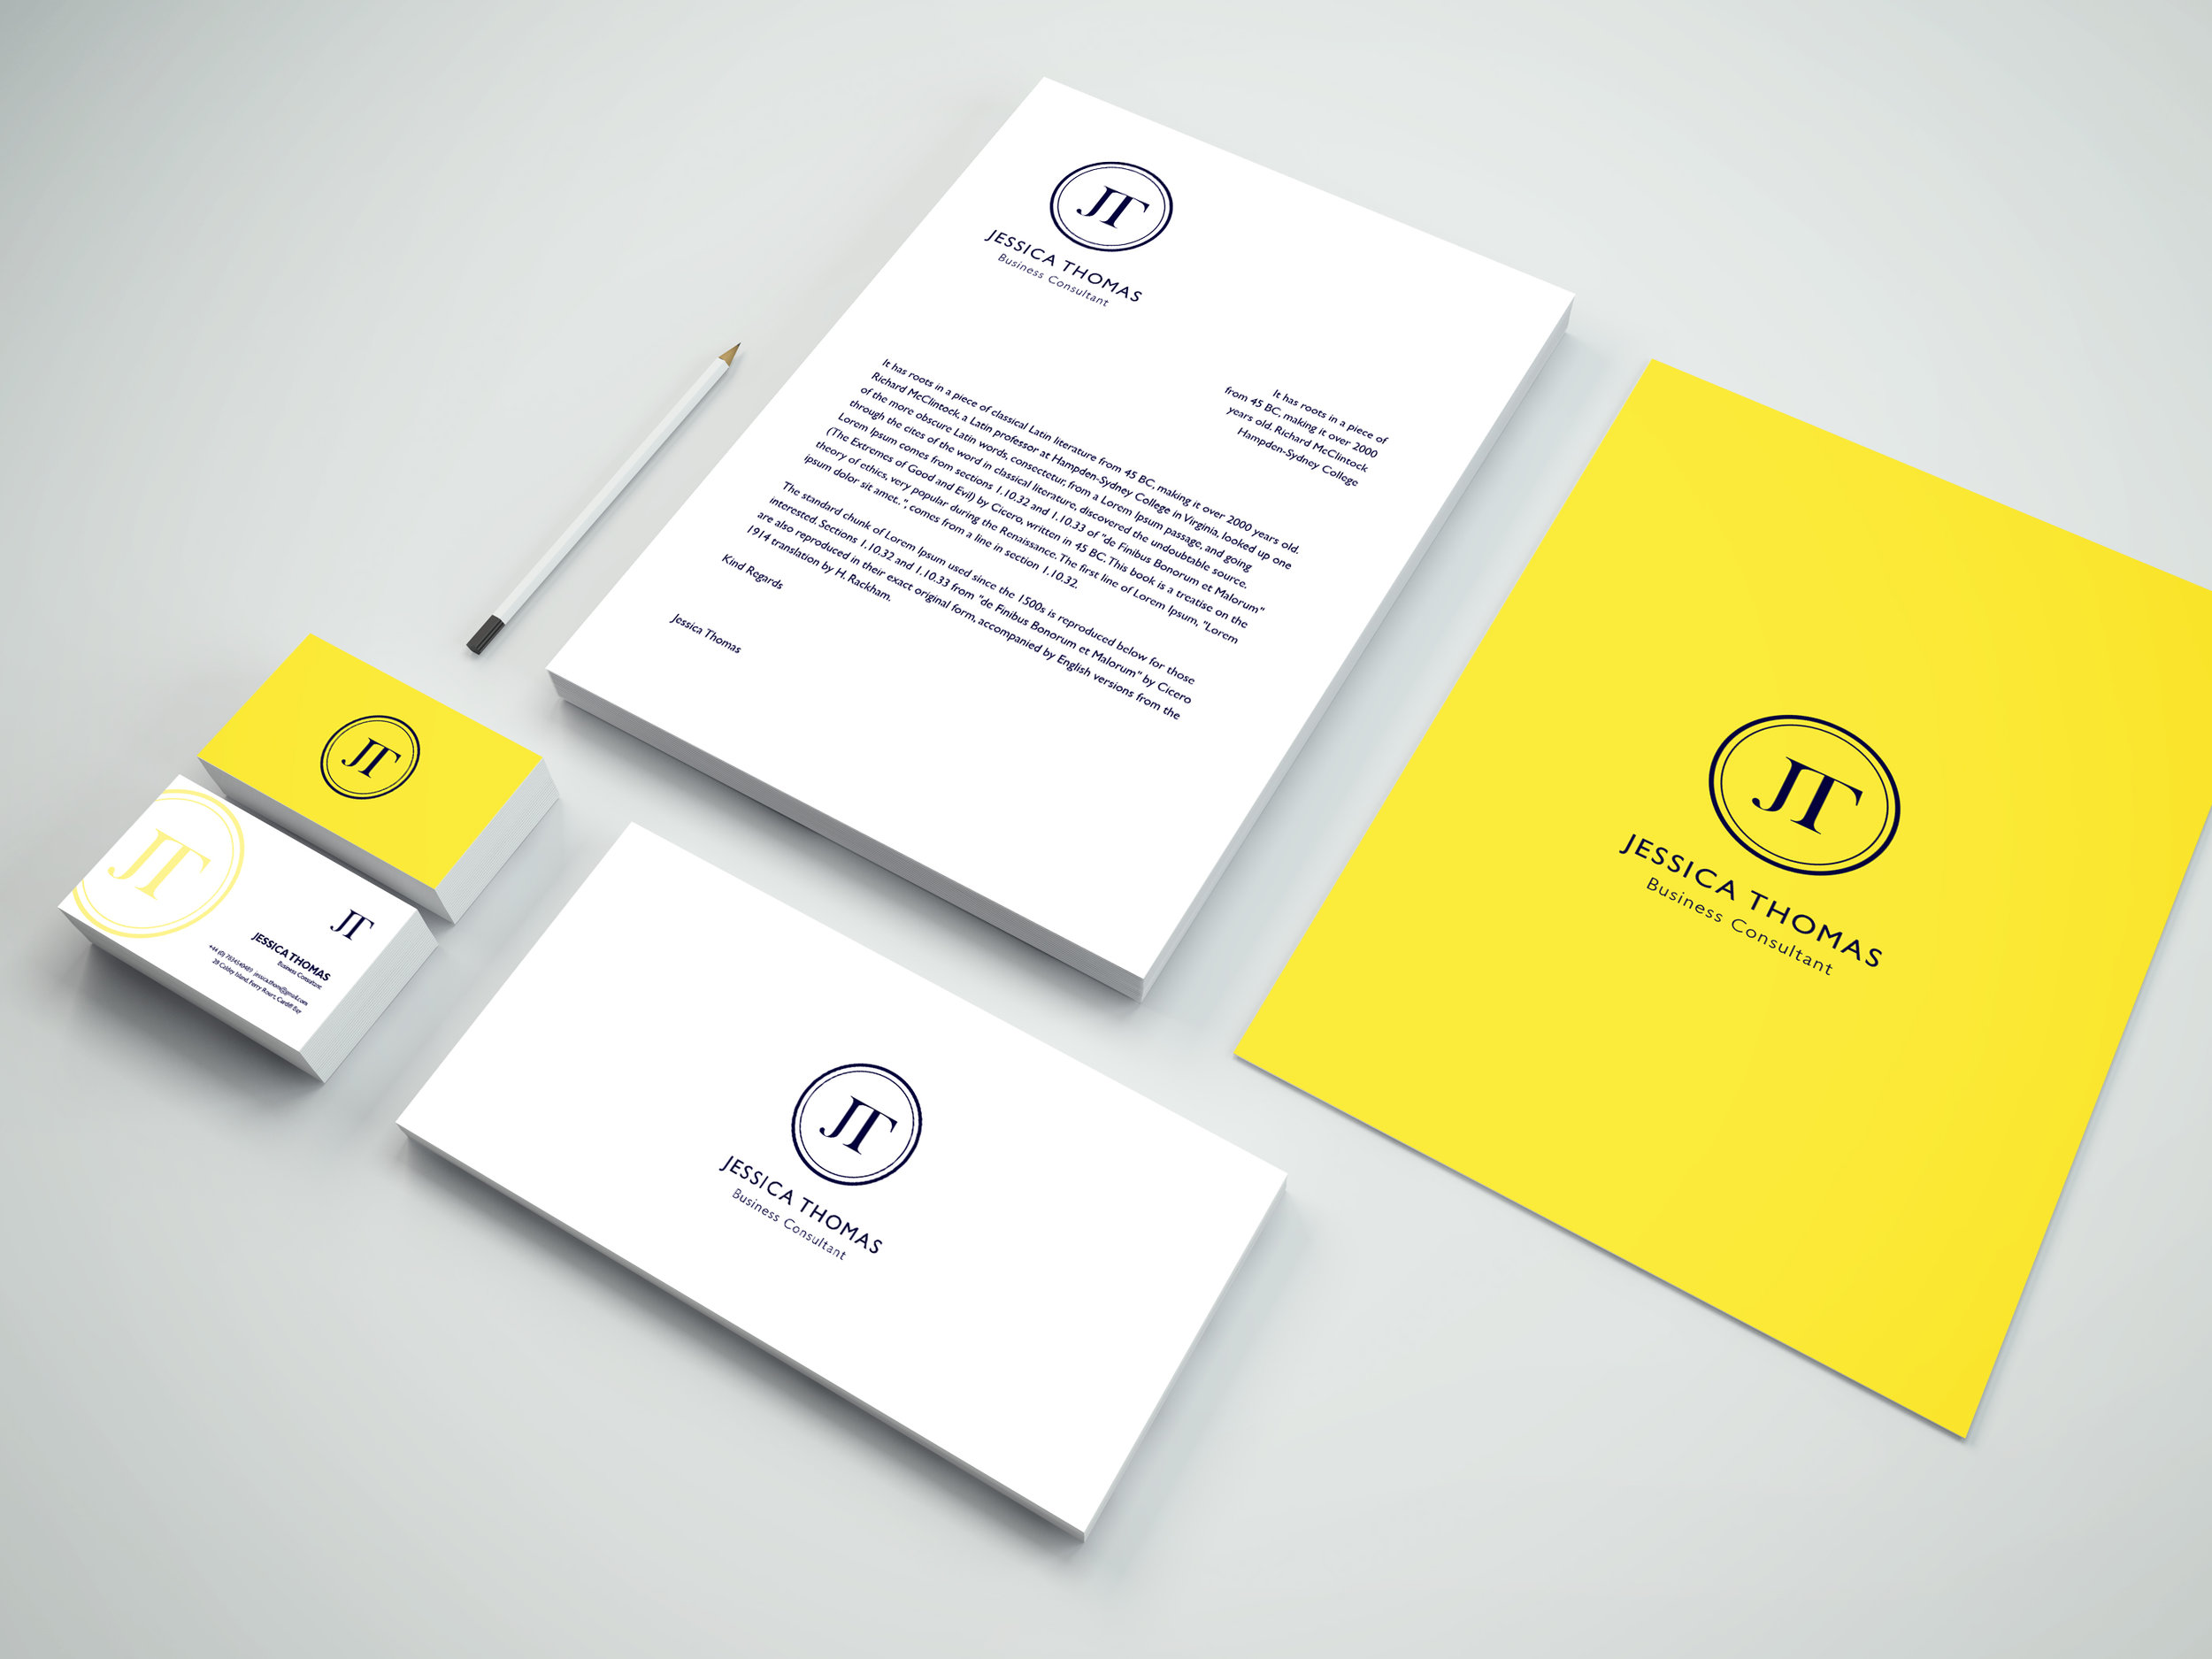 Branding Stationery Mockup business consultant.jpg